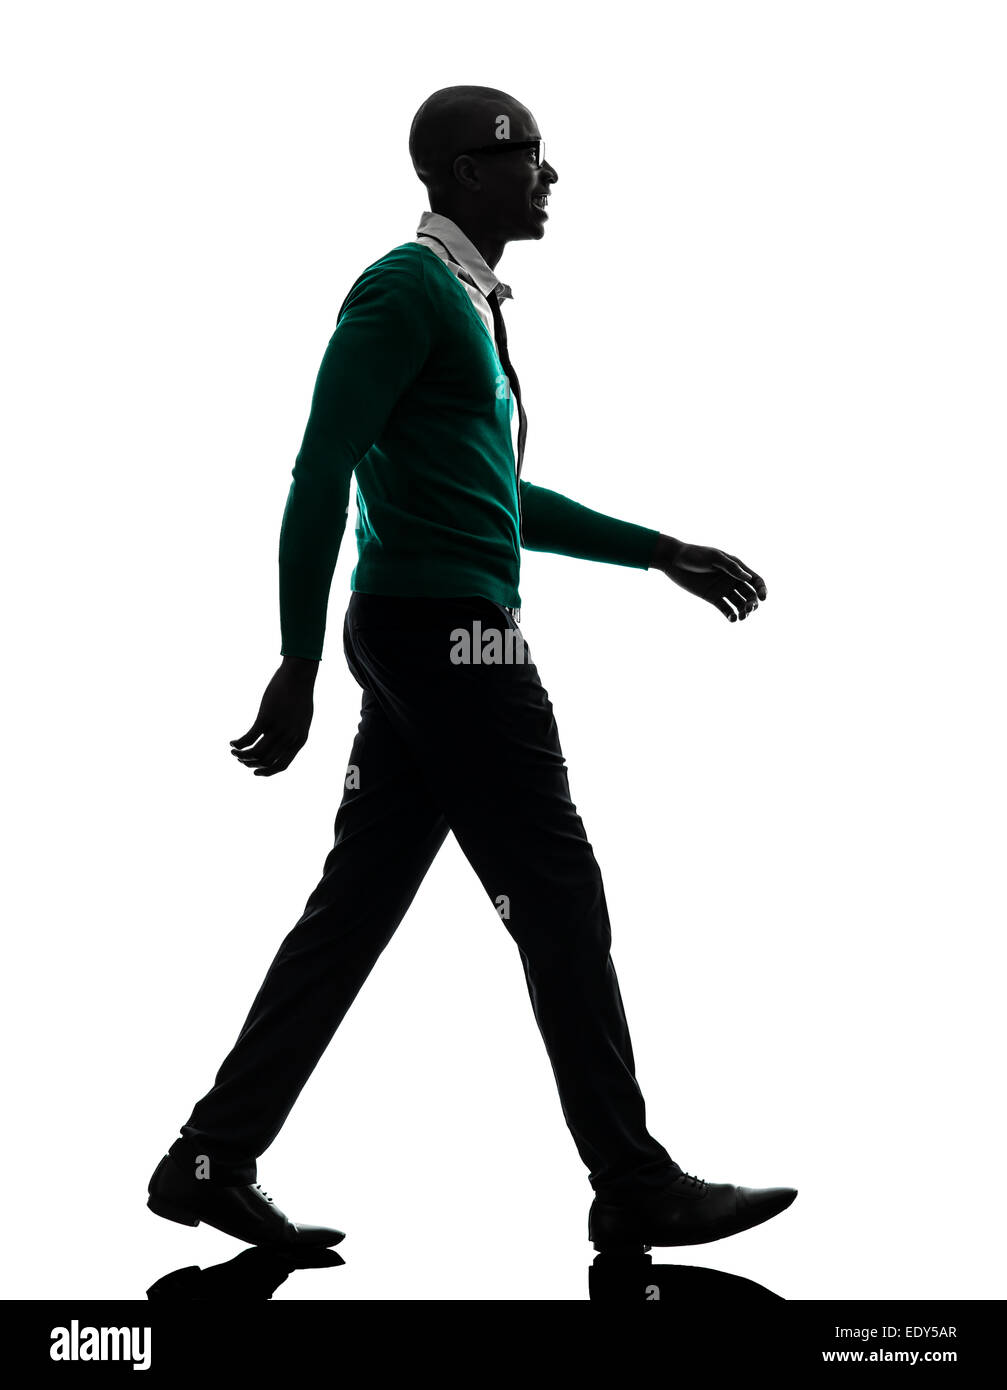 one african black man walking in silhouette studio on white background - Stock Image